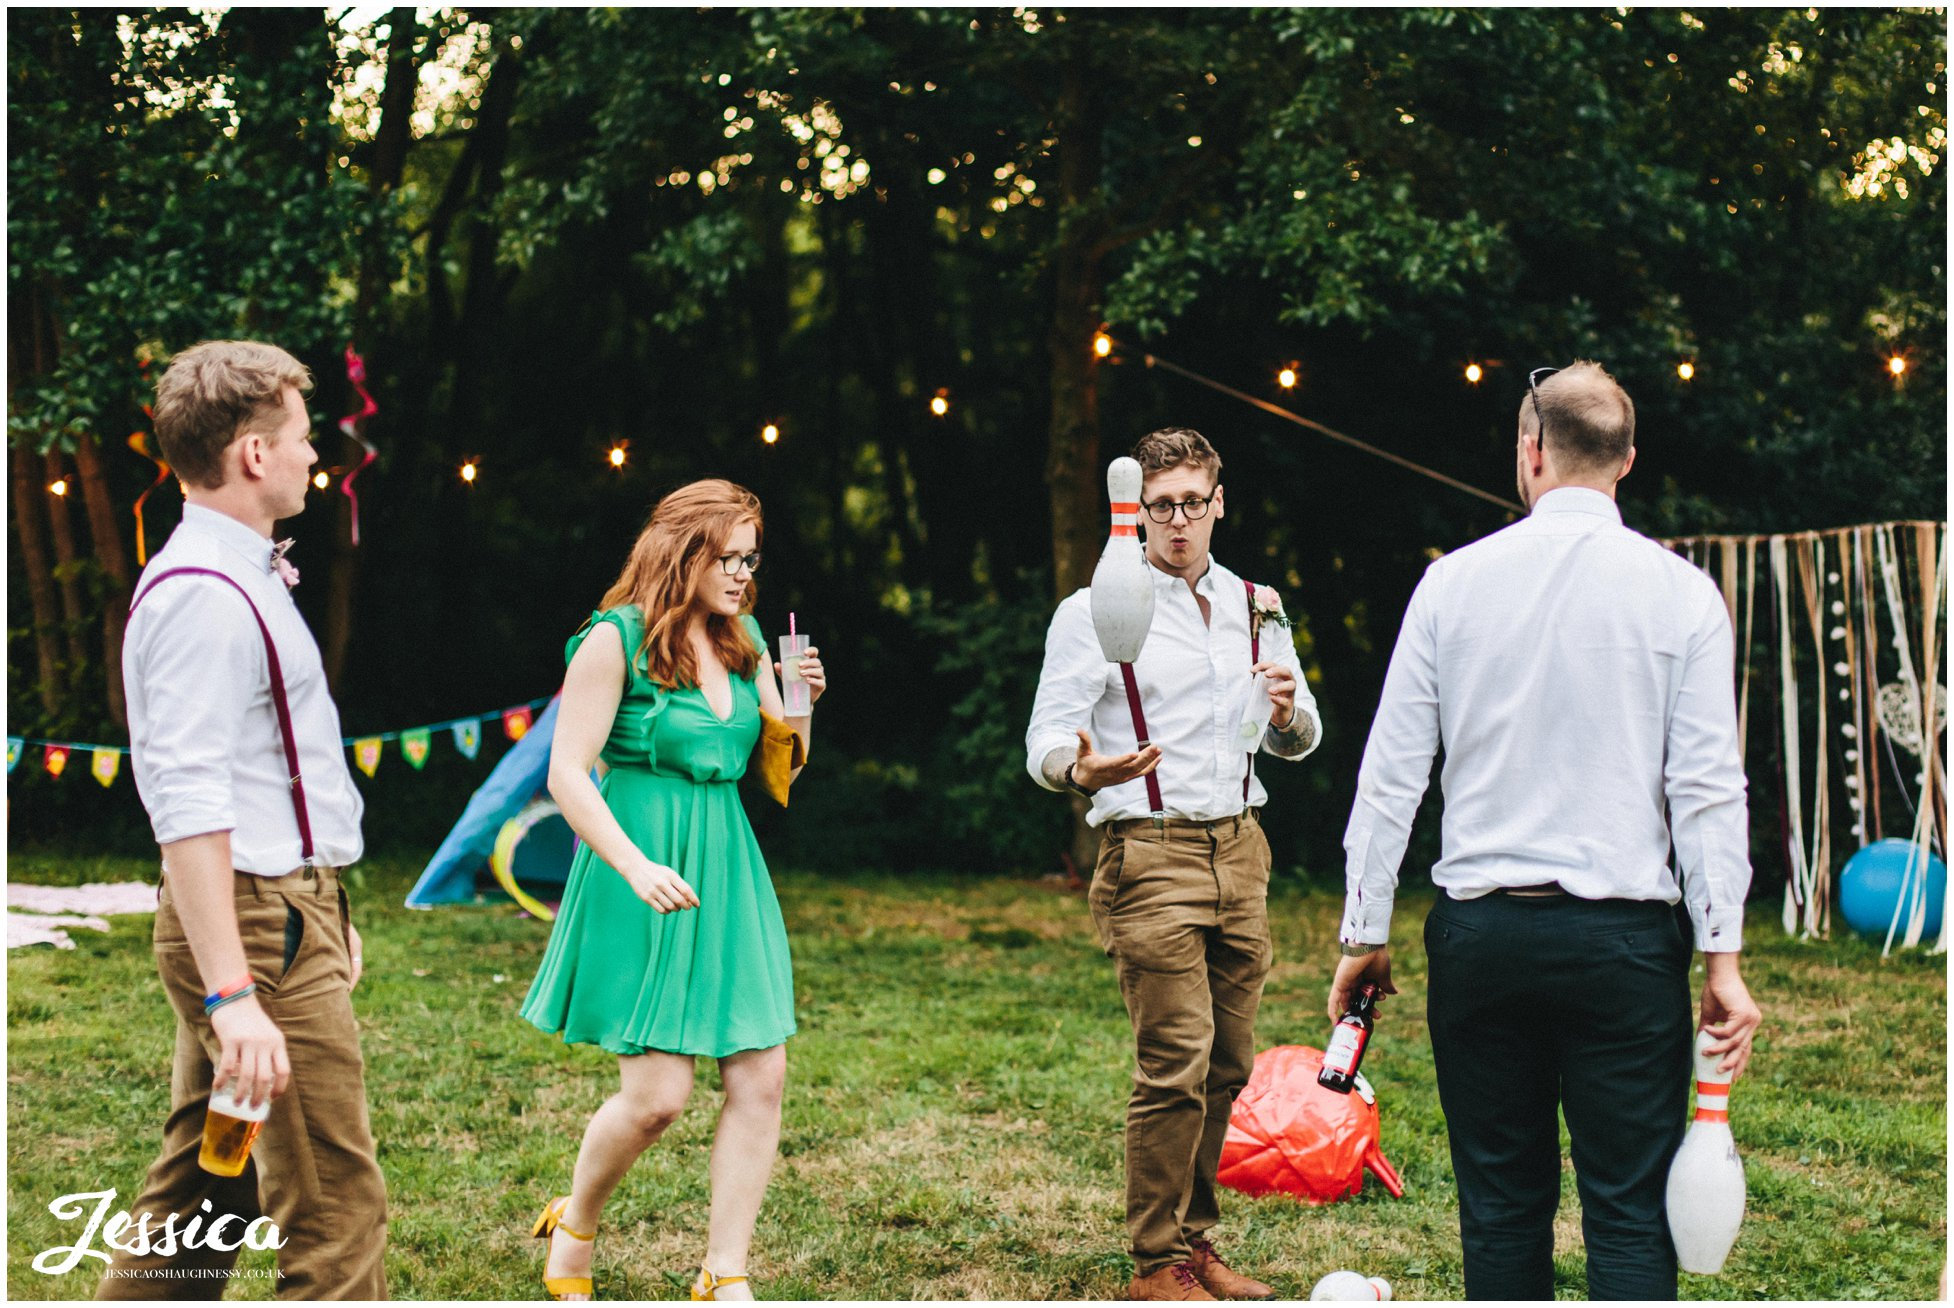 guests play with bowling pins during the reception in cheshire